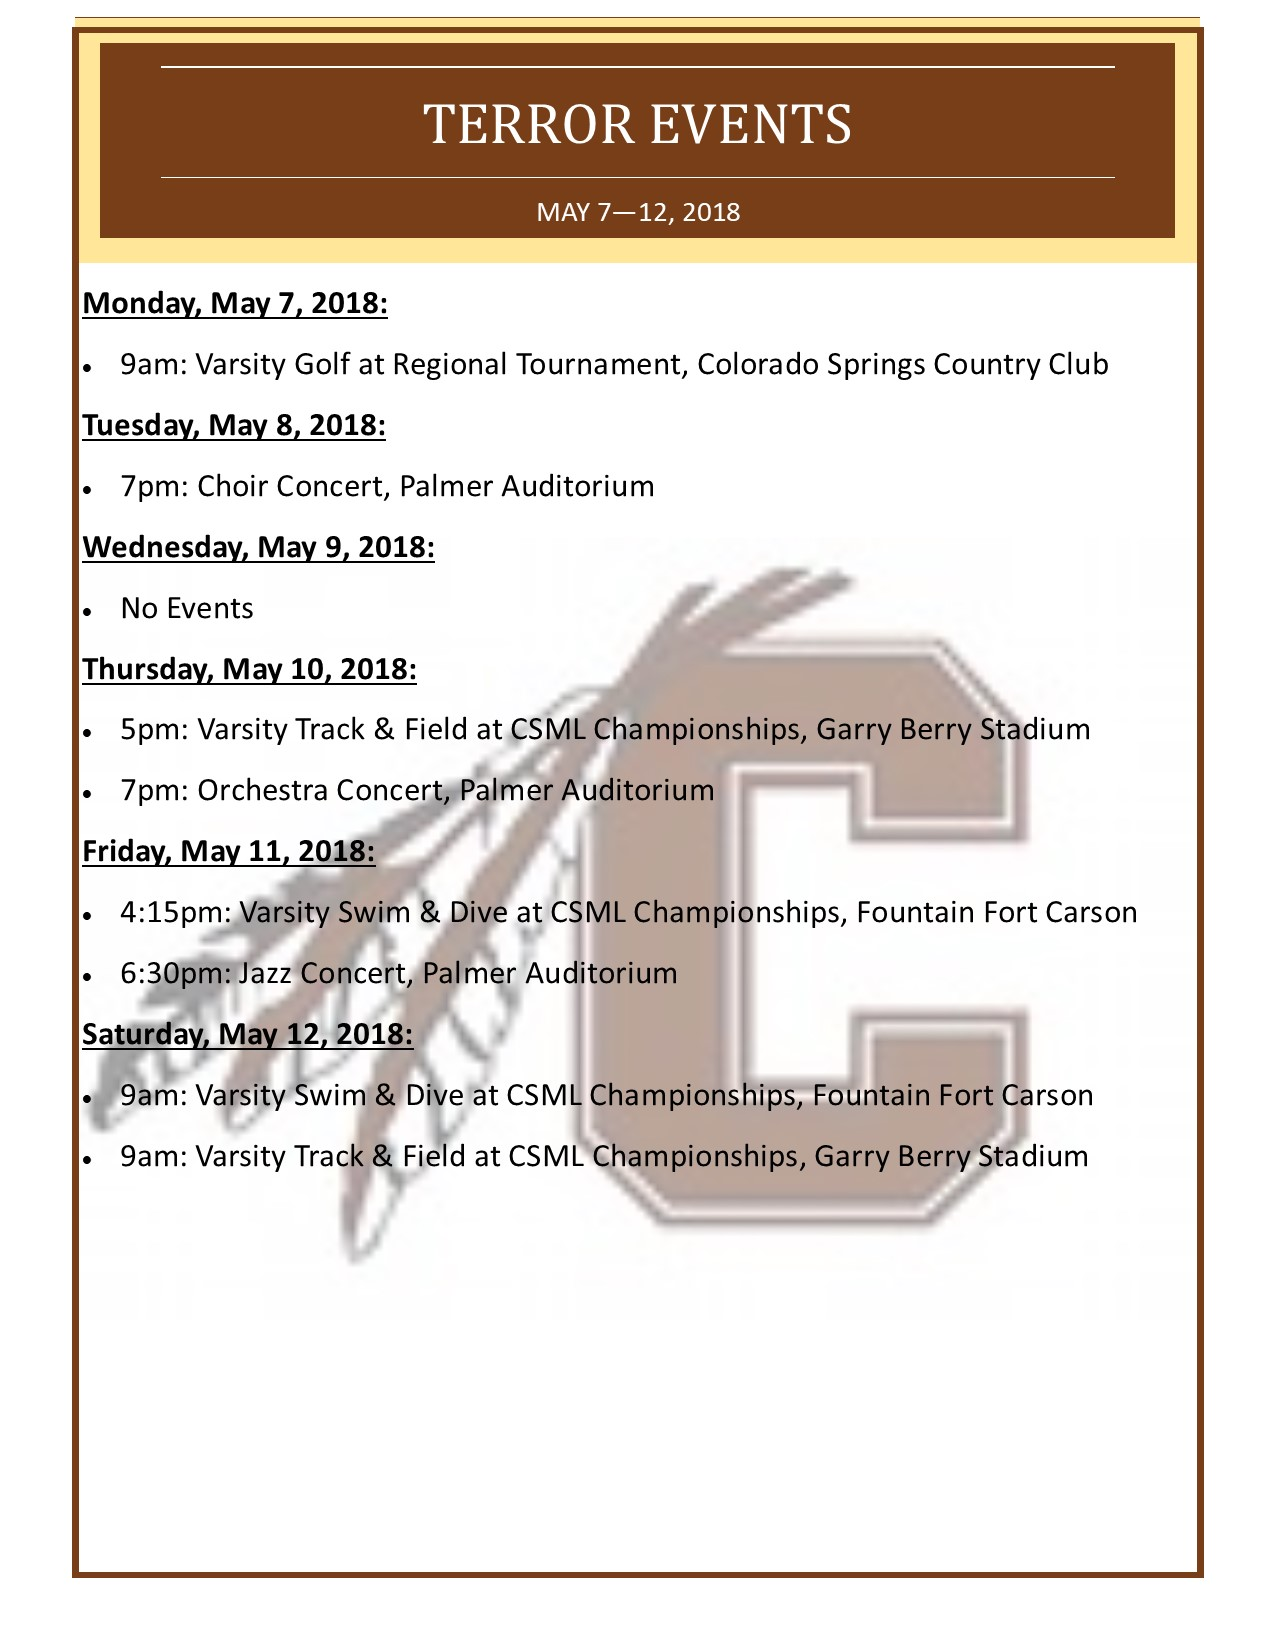 Palmer Events for the Week of May 7, 2018